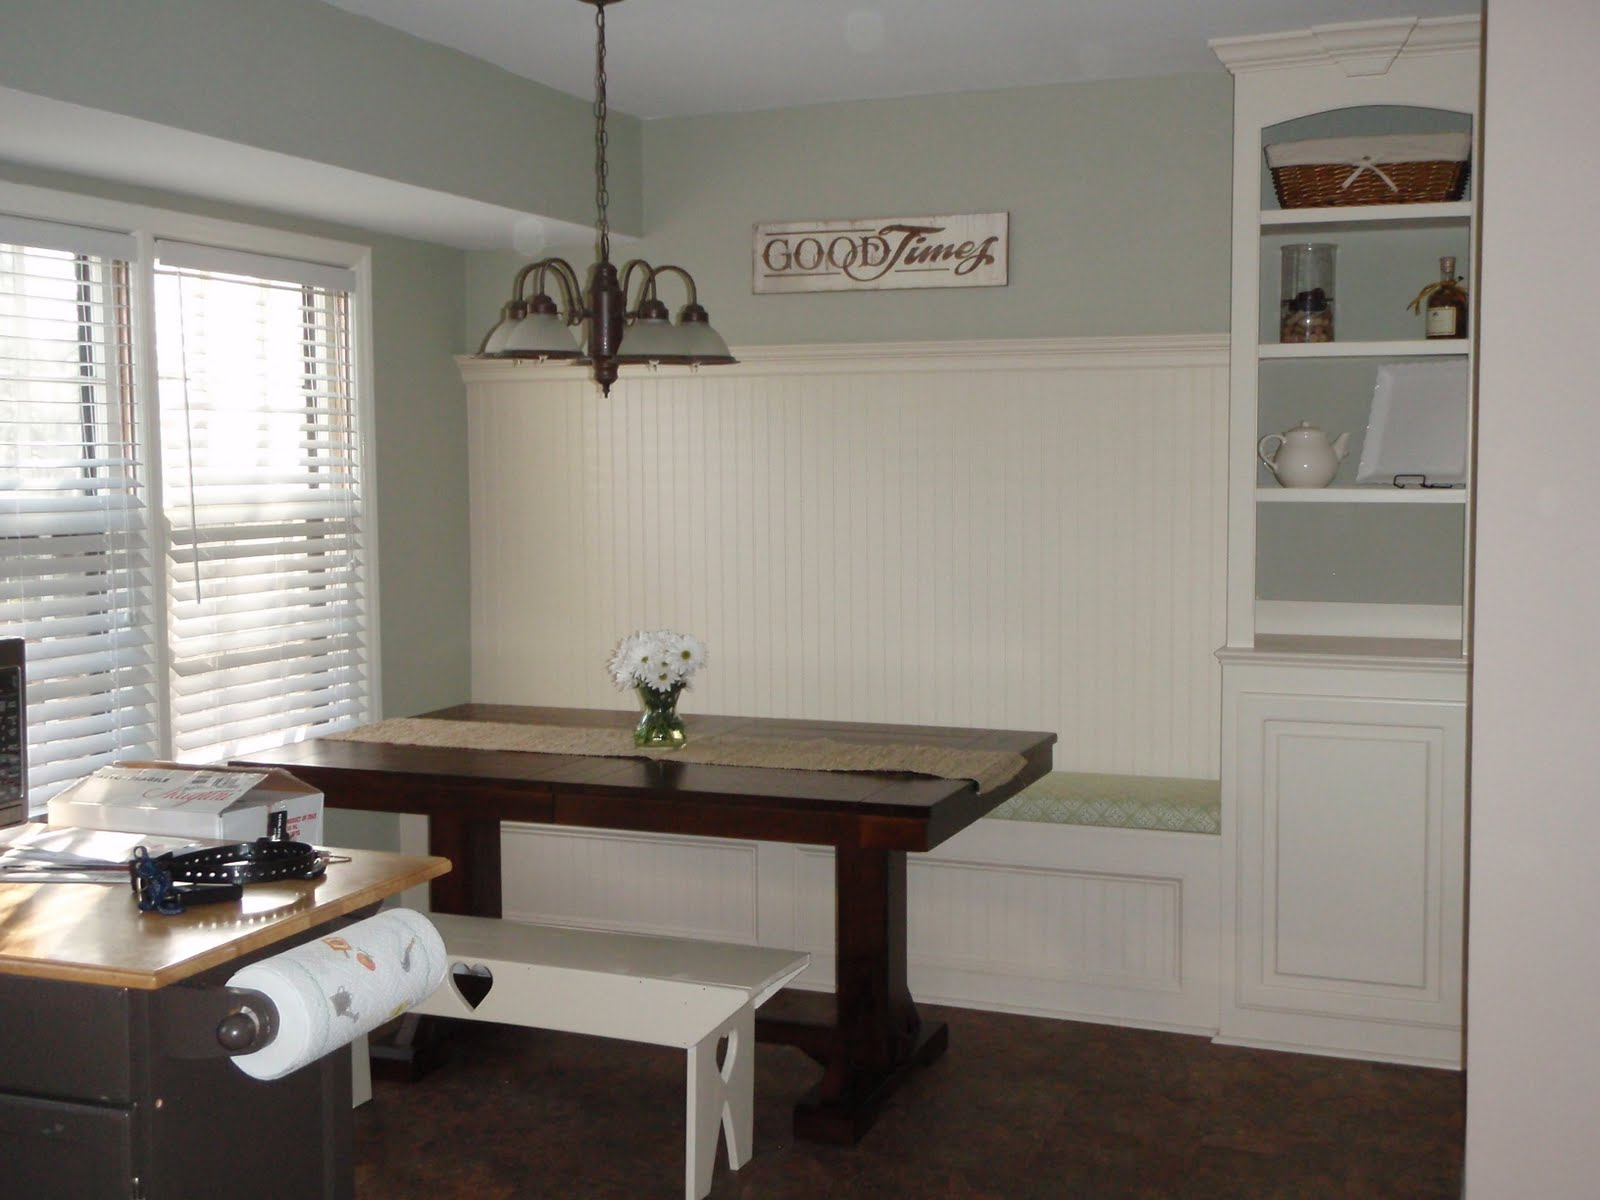 banquette seating in kitchen remodel